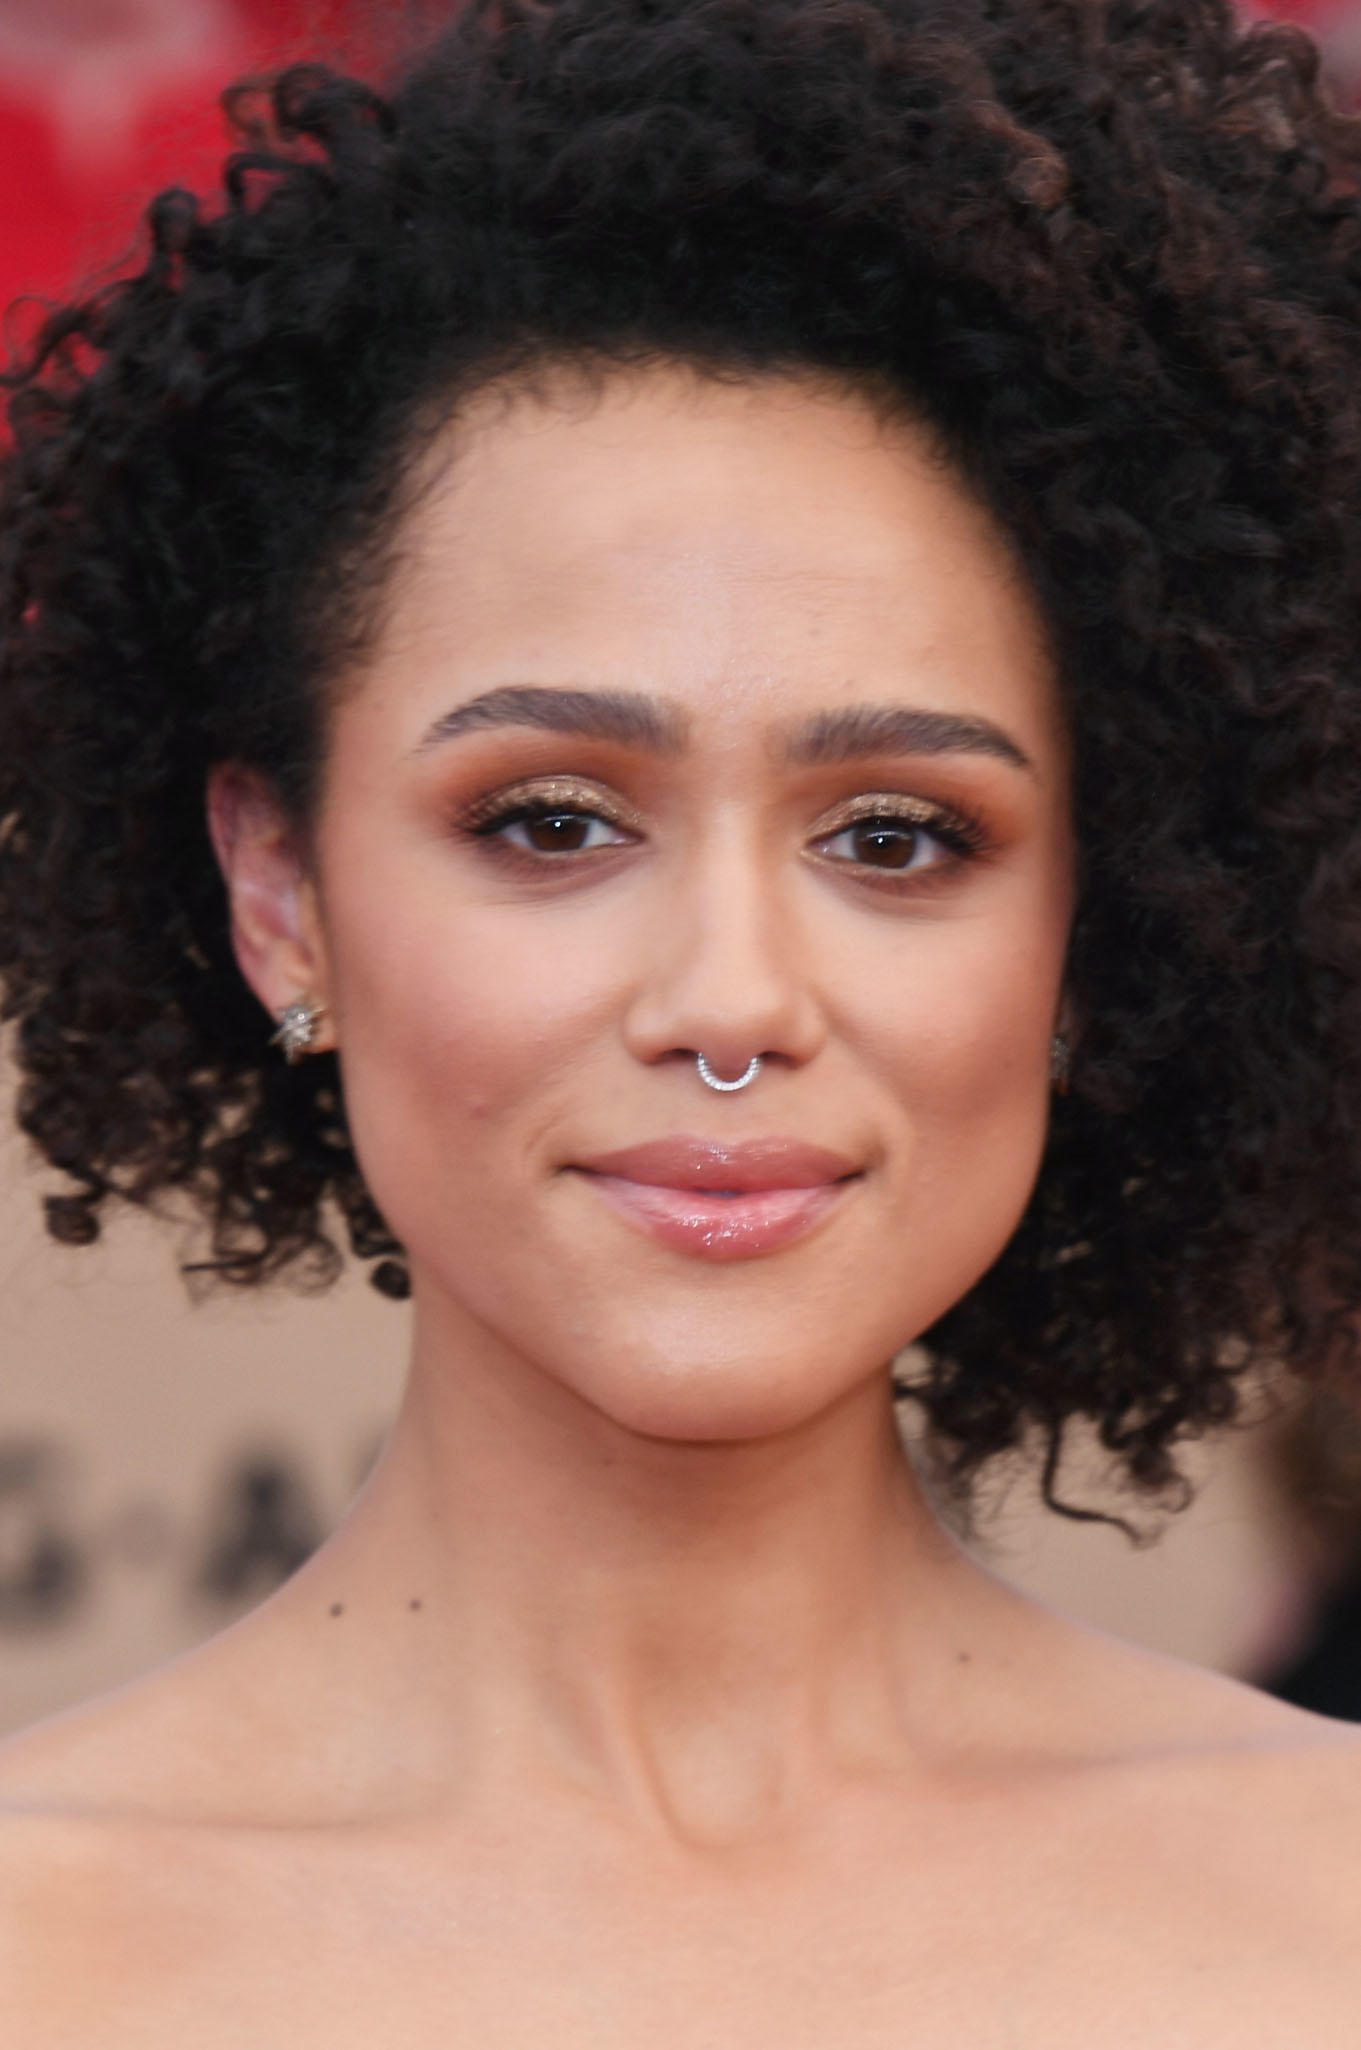 nathalie emmanuel pictures and photos | fandango